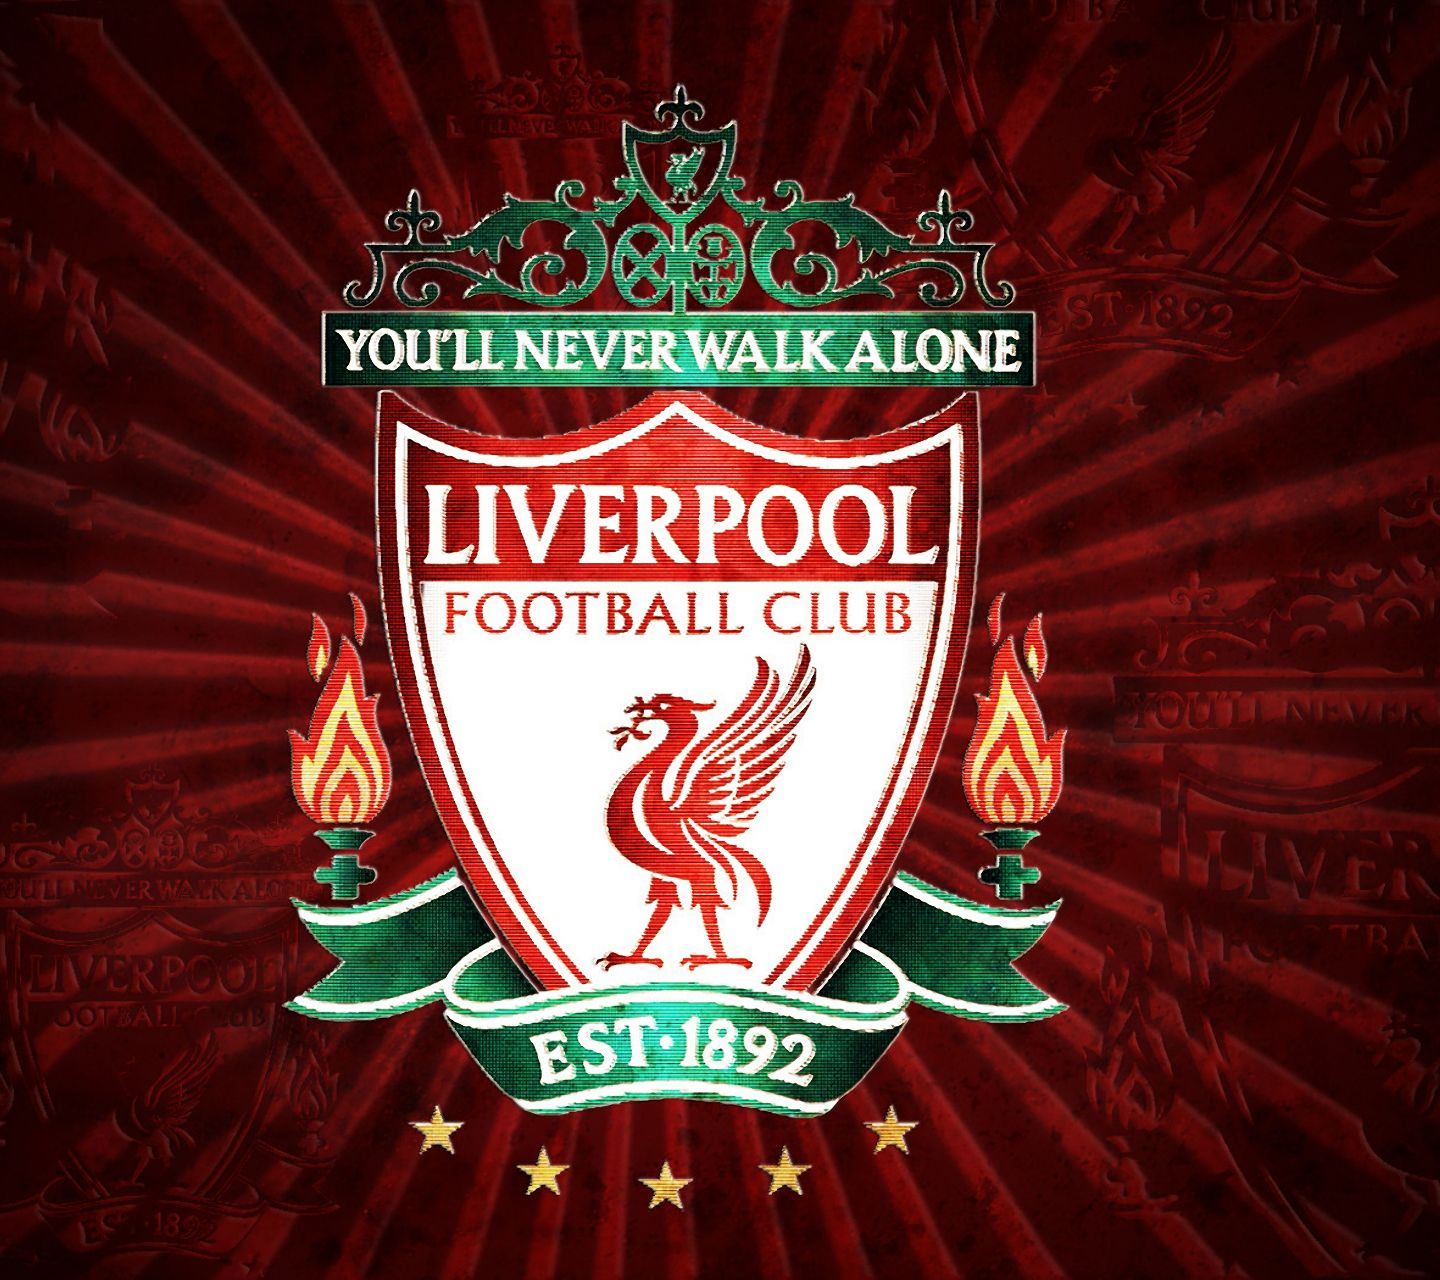 Liverpool Crest Wallpapers (44 Wallpapers) - Adorable Wallpapers